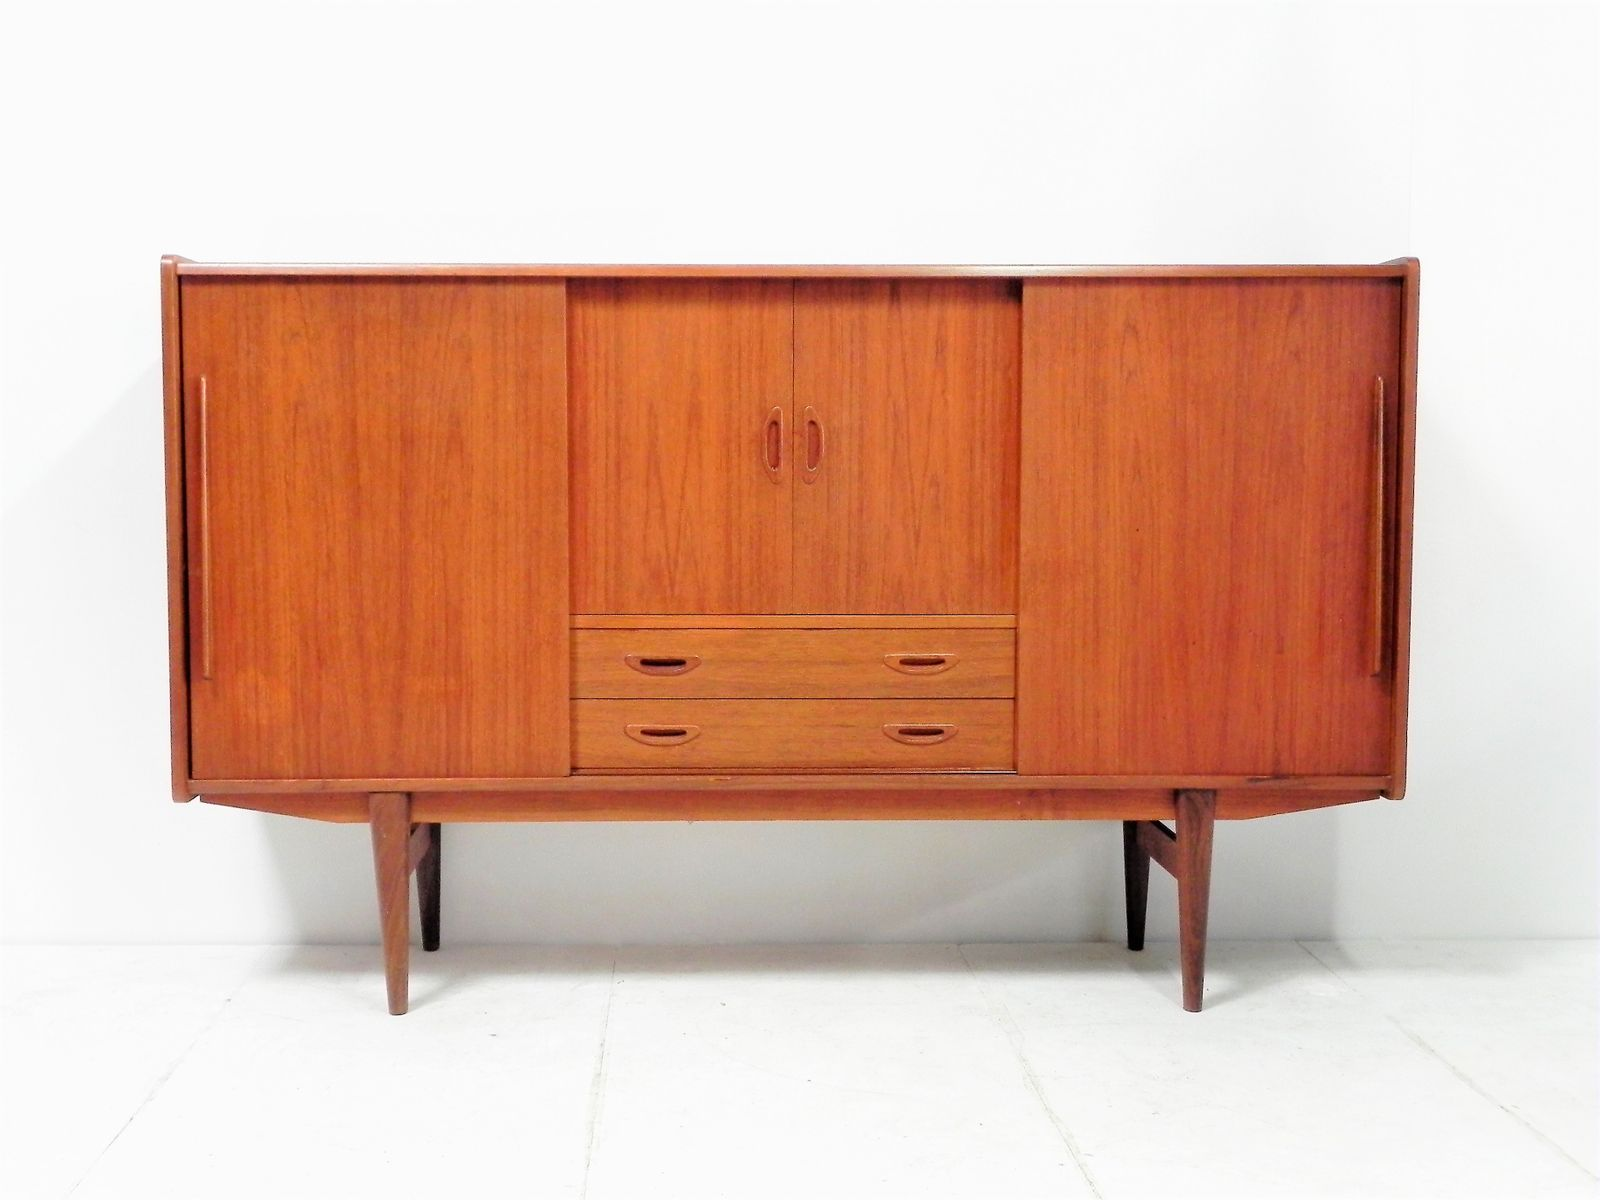 skandinavisches mid century teak und palisander sideboard bei pamono kaufen. Black Bedroom Furniture Sets. Home Design Ideas